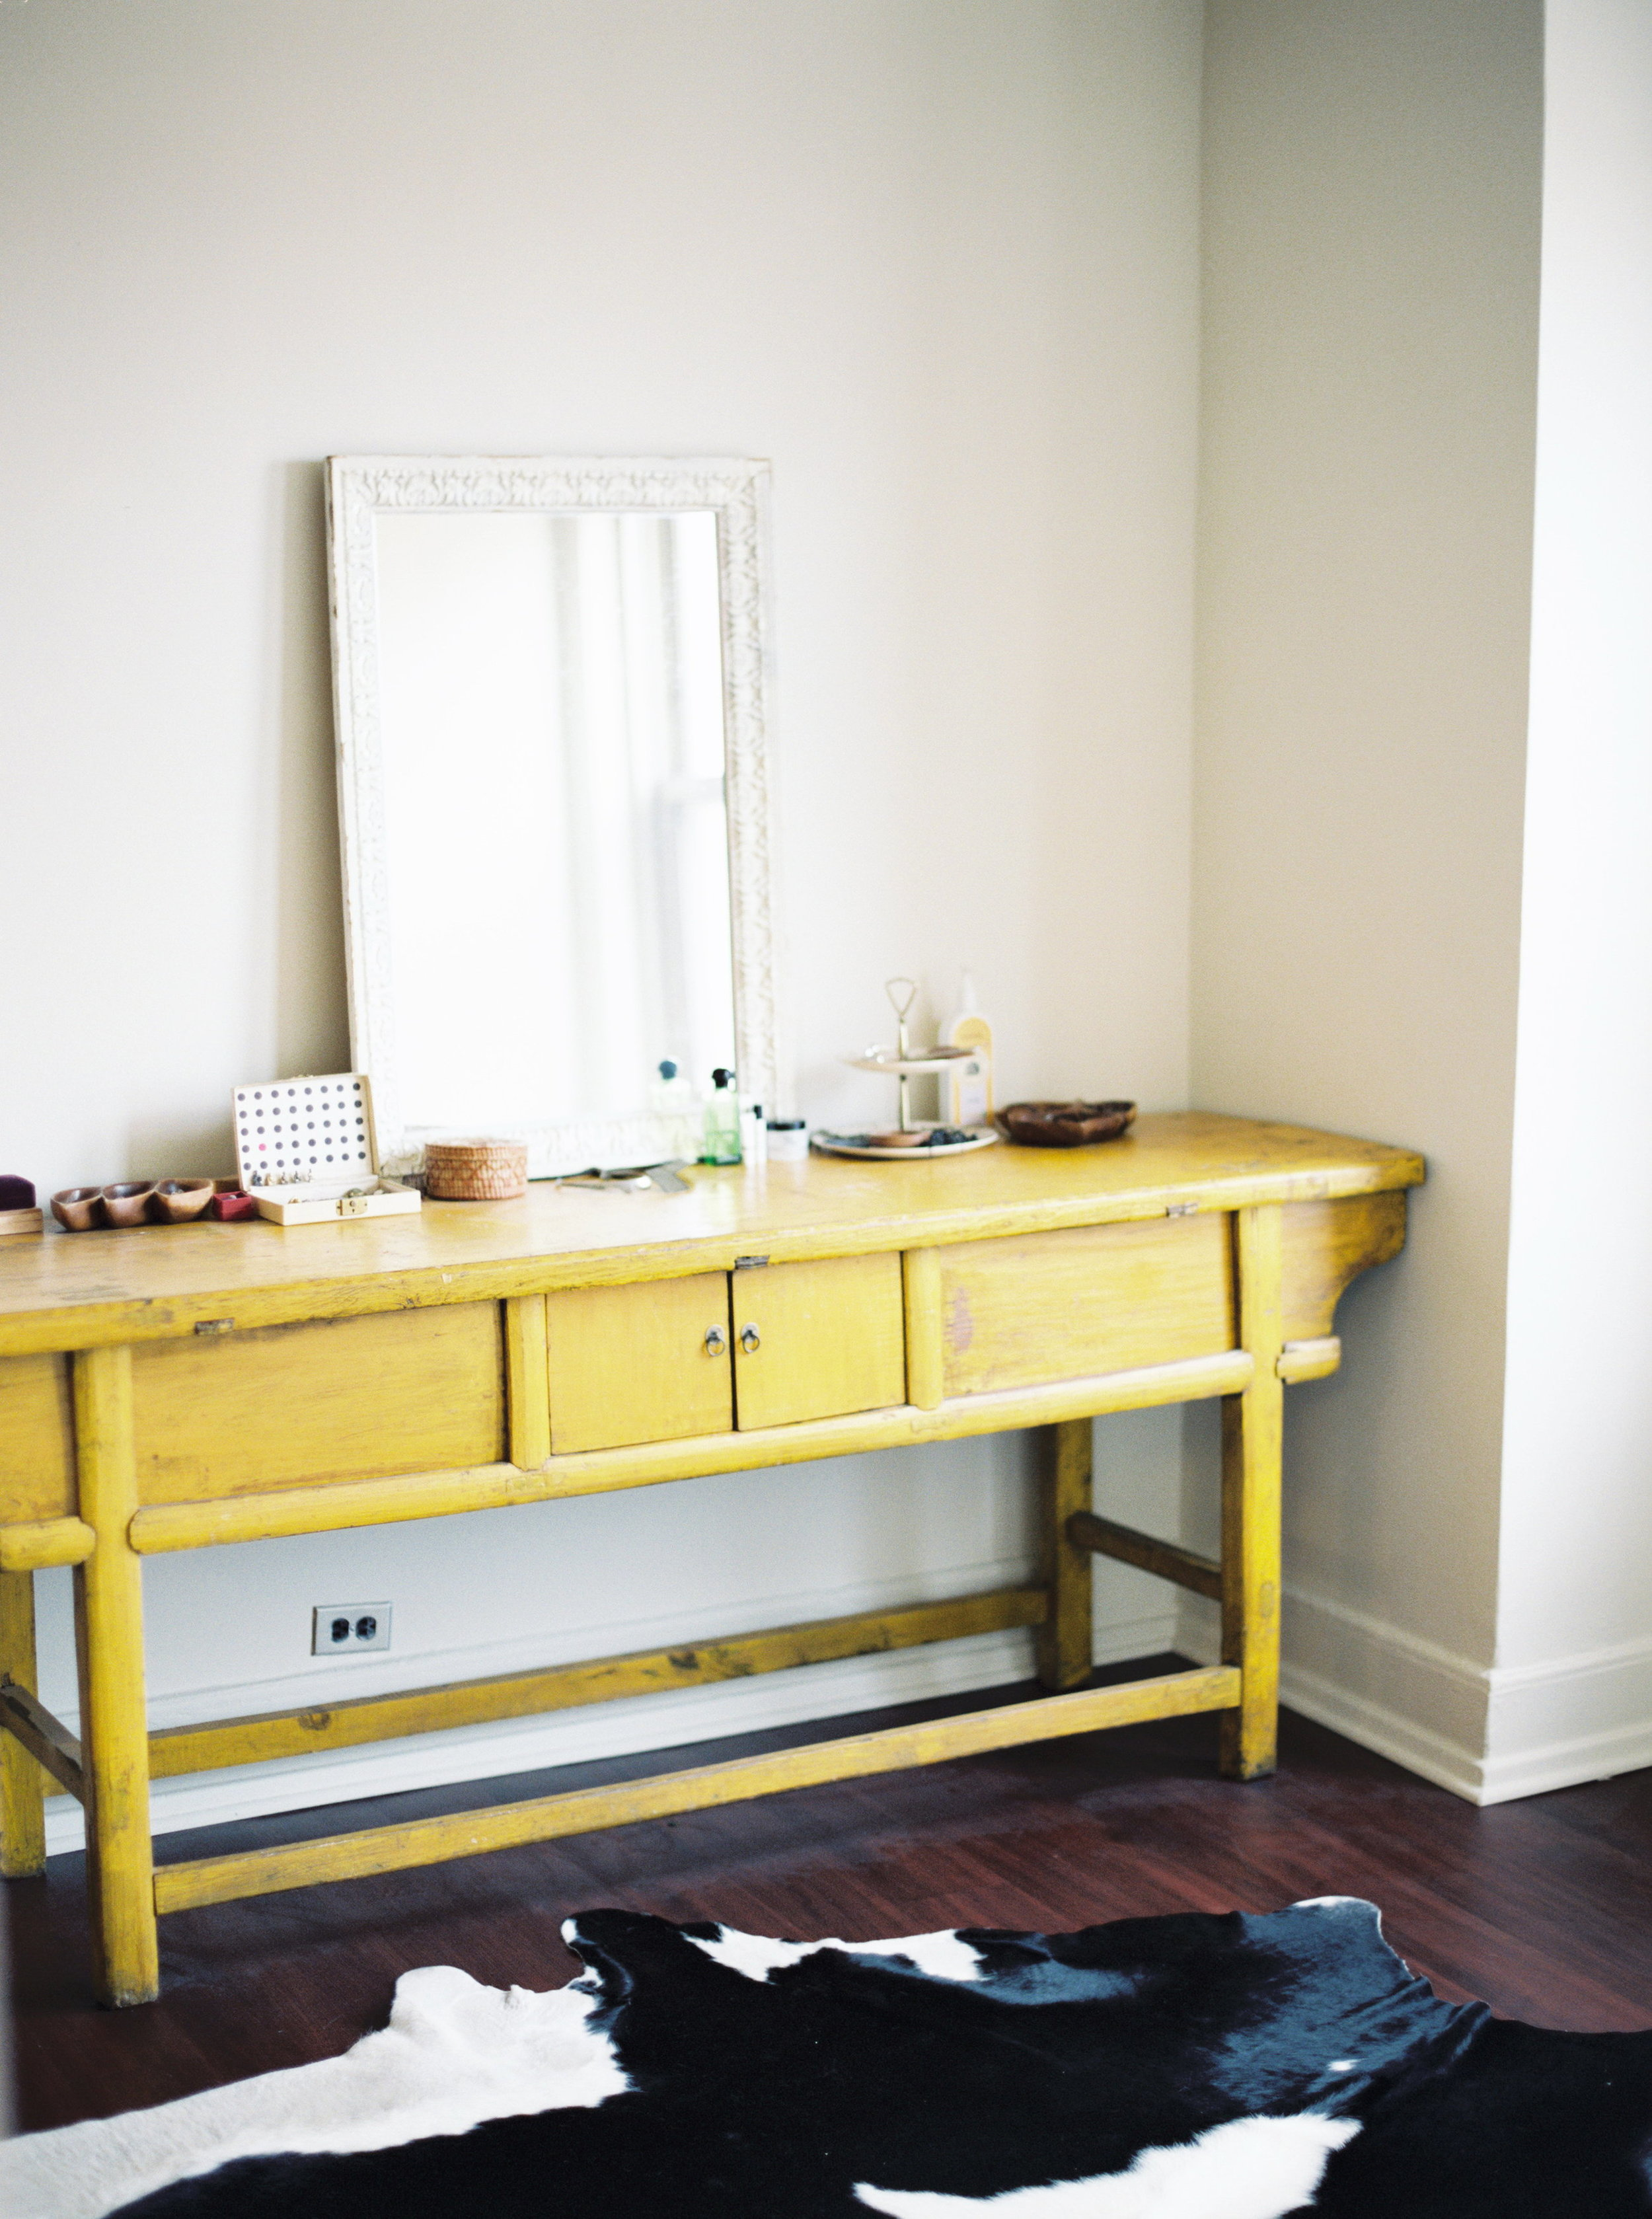 """We call this piece of furniture the """"yellow thing."""" It was one of our first major furniture purchases after we got married. We found it at Atlanta's Lakewood Antique Market (when it still existed!) and fell in love. It is from Mongolia and was purportedly usedin a kitchen as a countertop  it has wonderful marks and dings, and the color is alsooriginal. When we first bought it we lived in a 900 sq. ft. apartment and the kitchen had noreal countertop, so that is what we used it for as well! The white mirror on top is abeautiful antique that my mom gave me."""